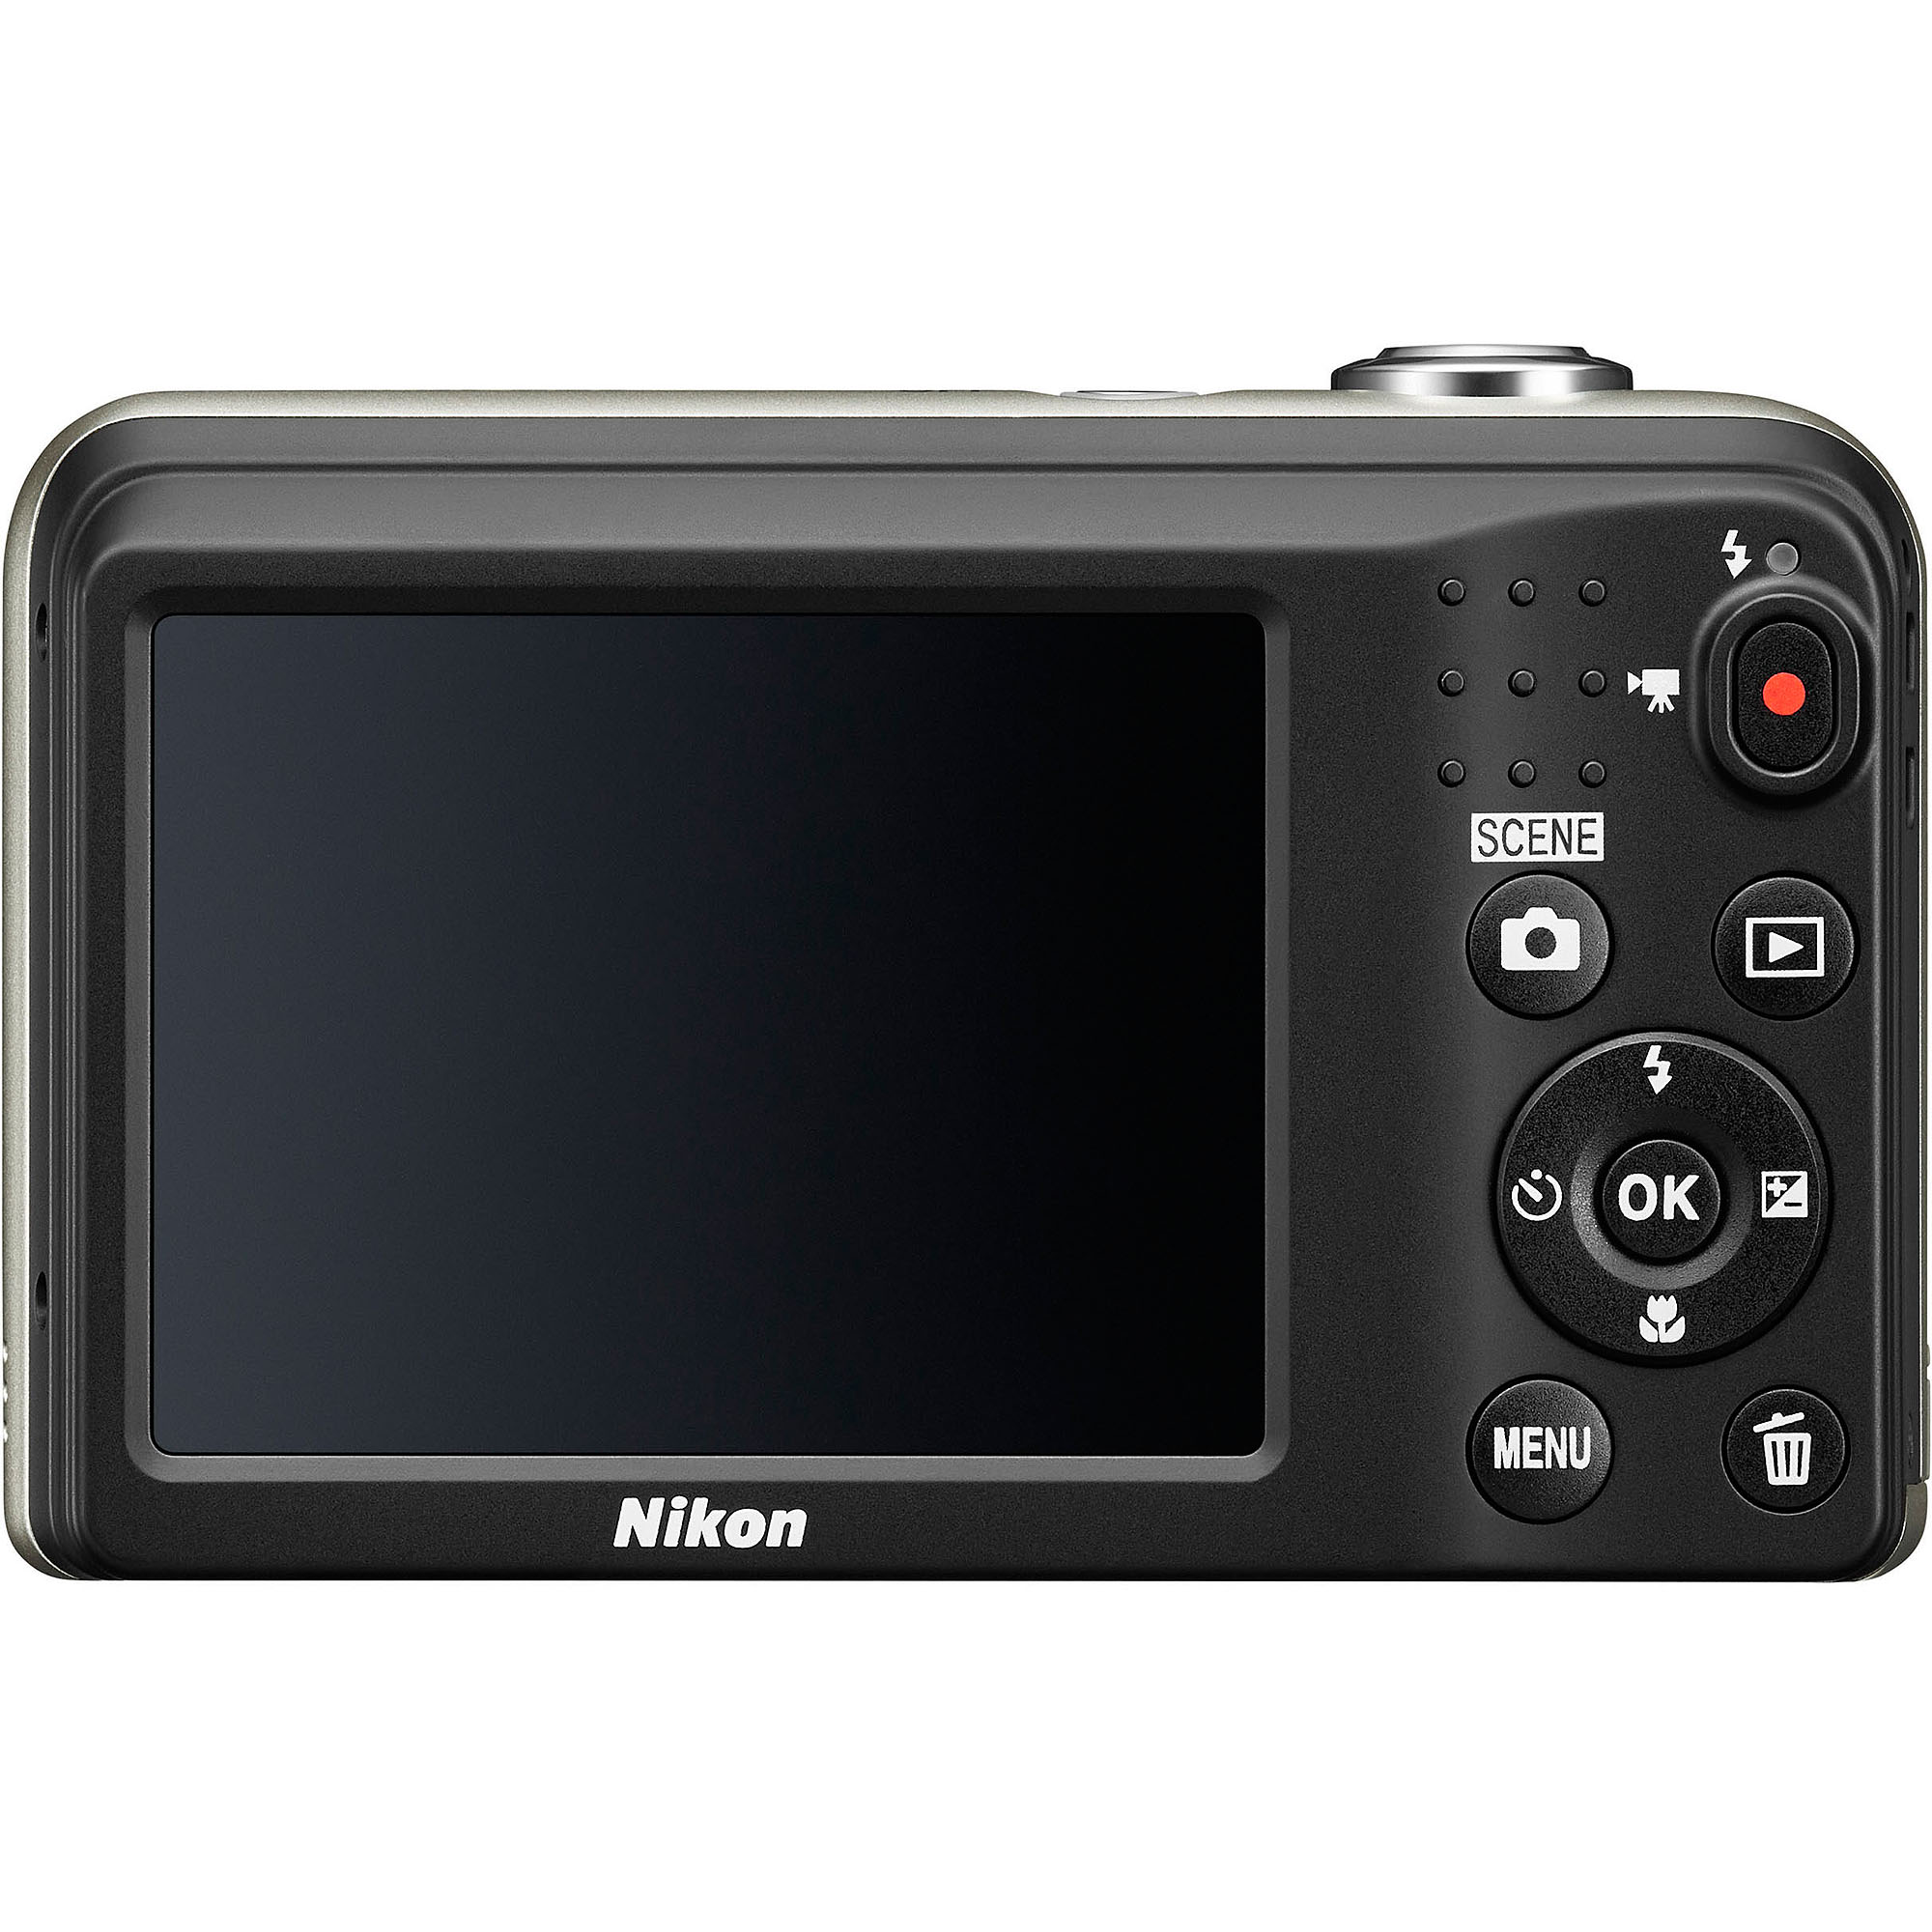 Nikon COOLPIX L29 Digital Camera with 16.1 Megapixels and 5x Optical Zoom (Available in Red and Silver)